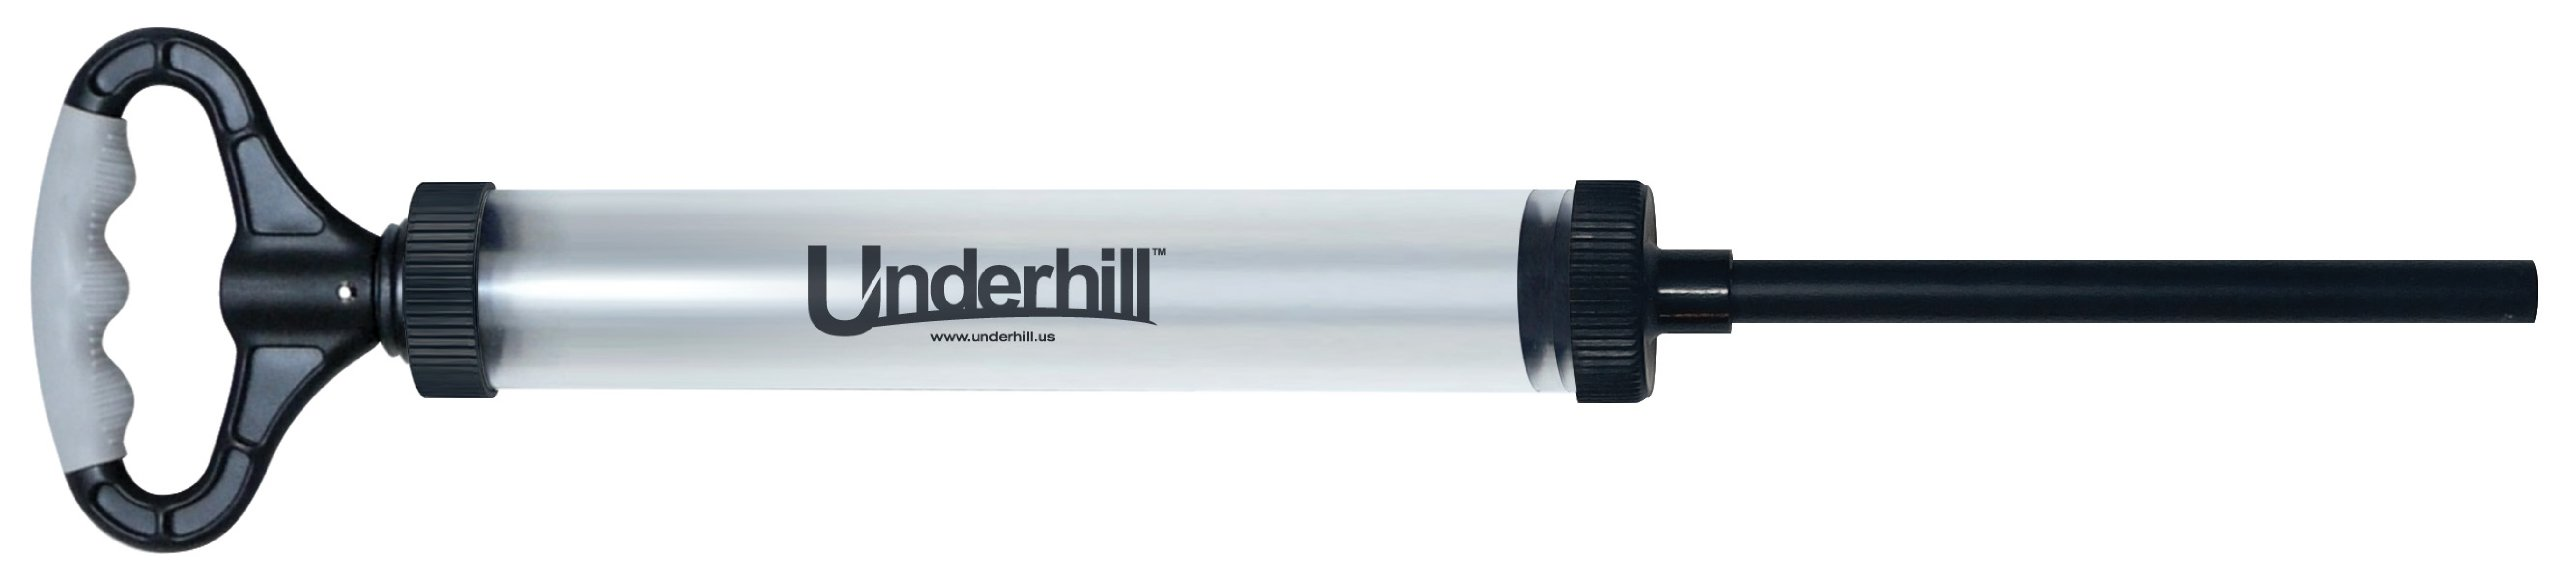 Underhill Syringe Water Removal Siphon Hand Pump